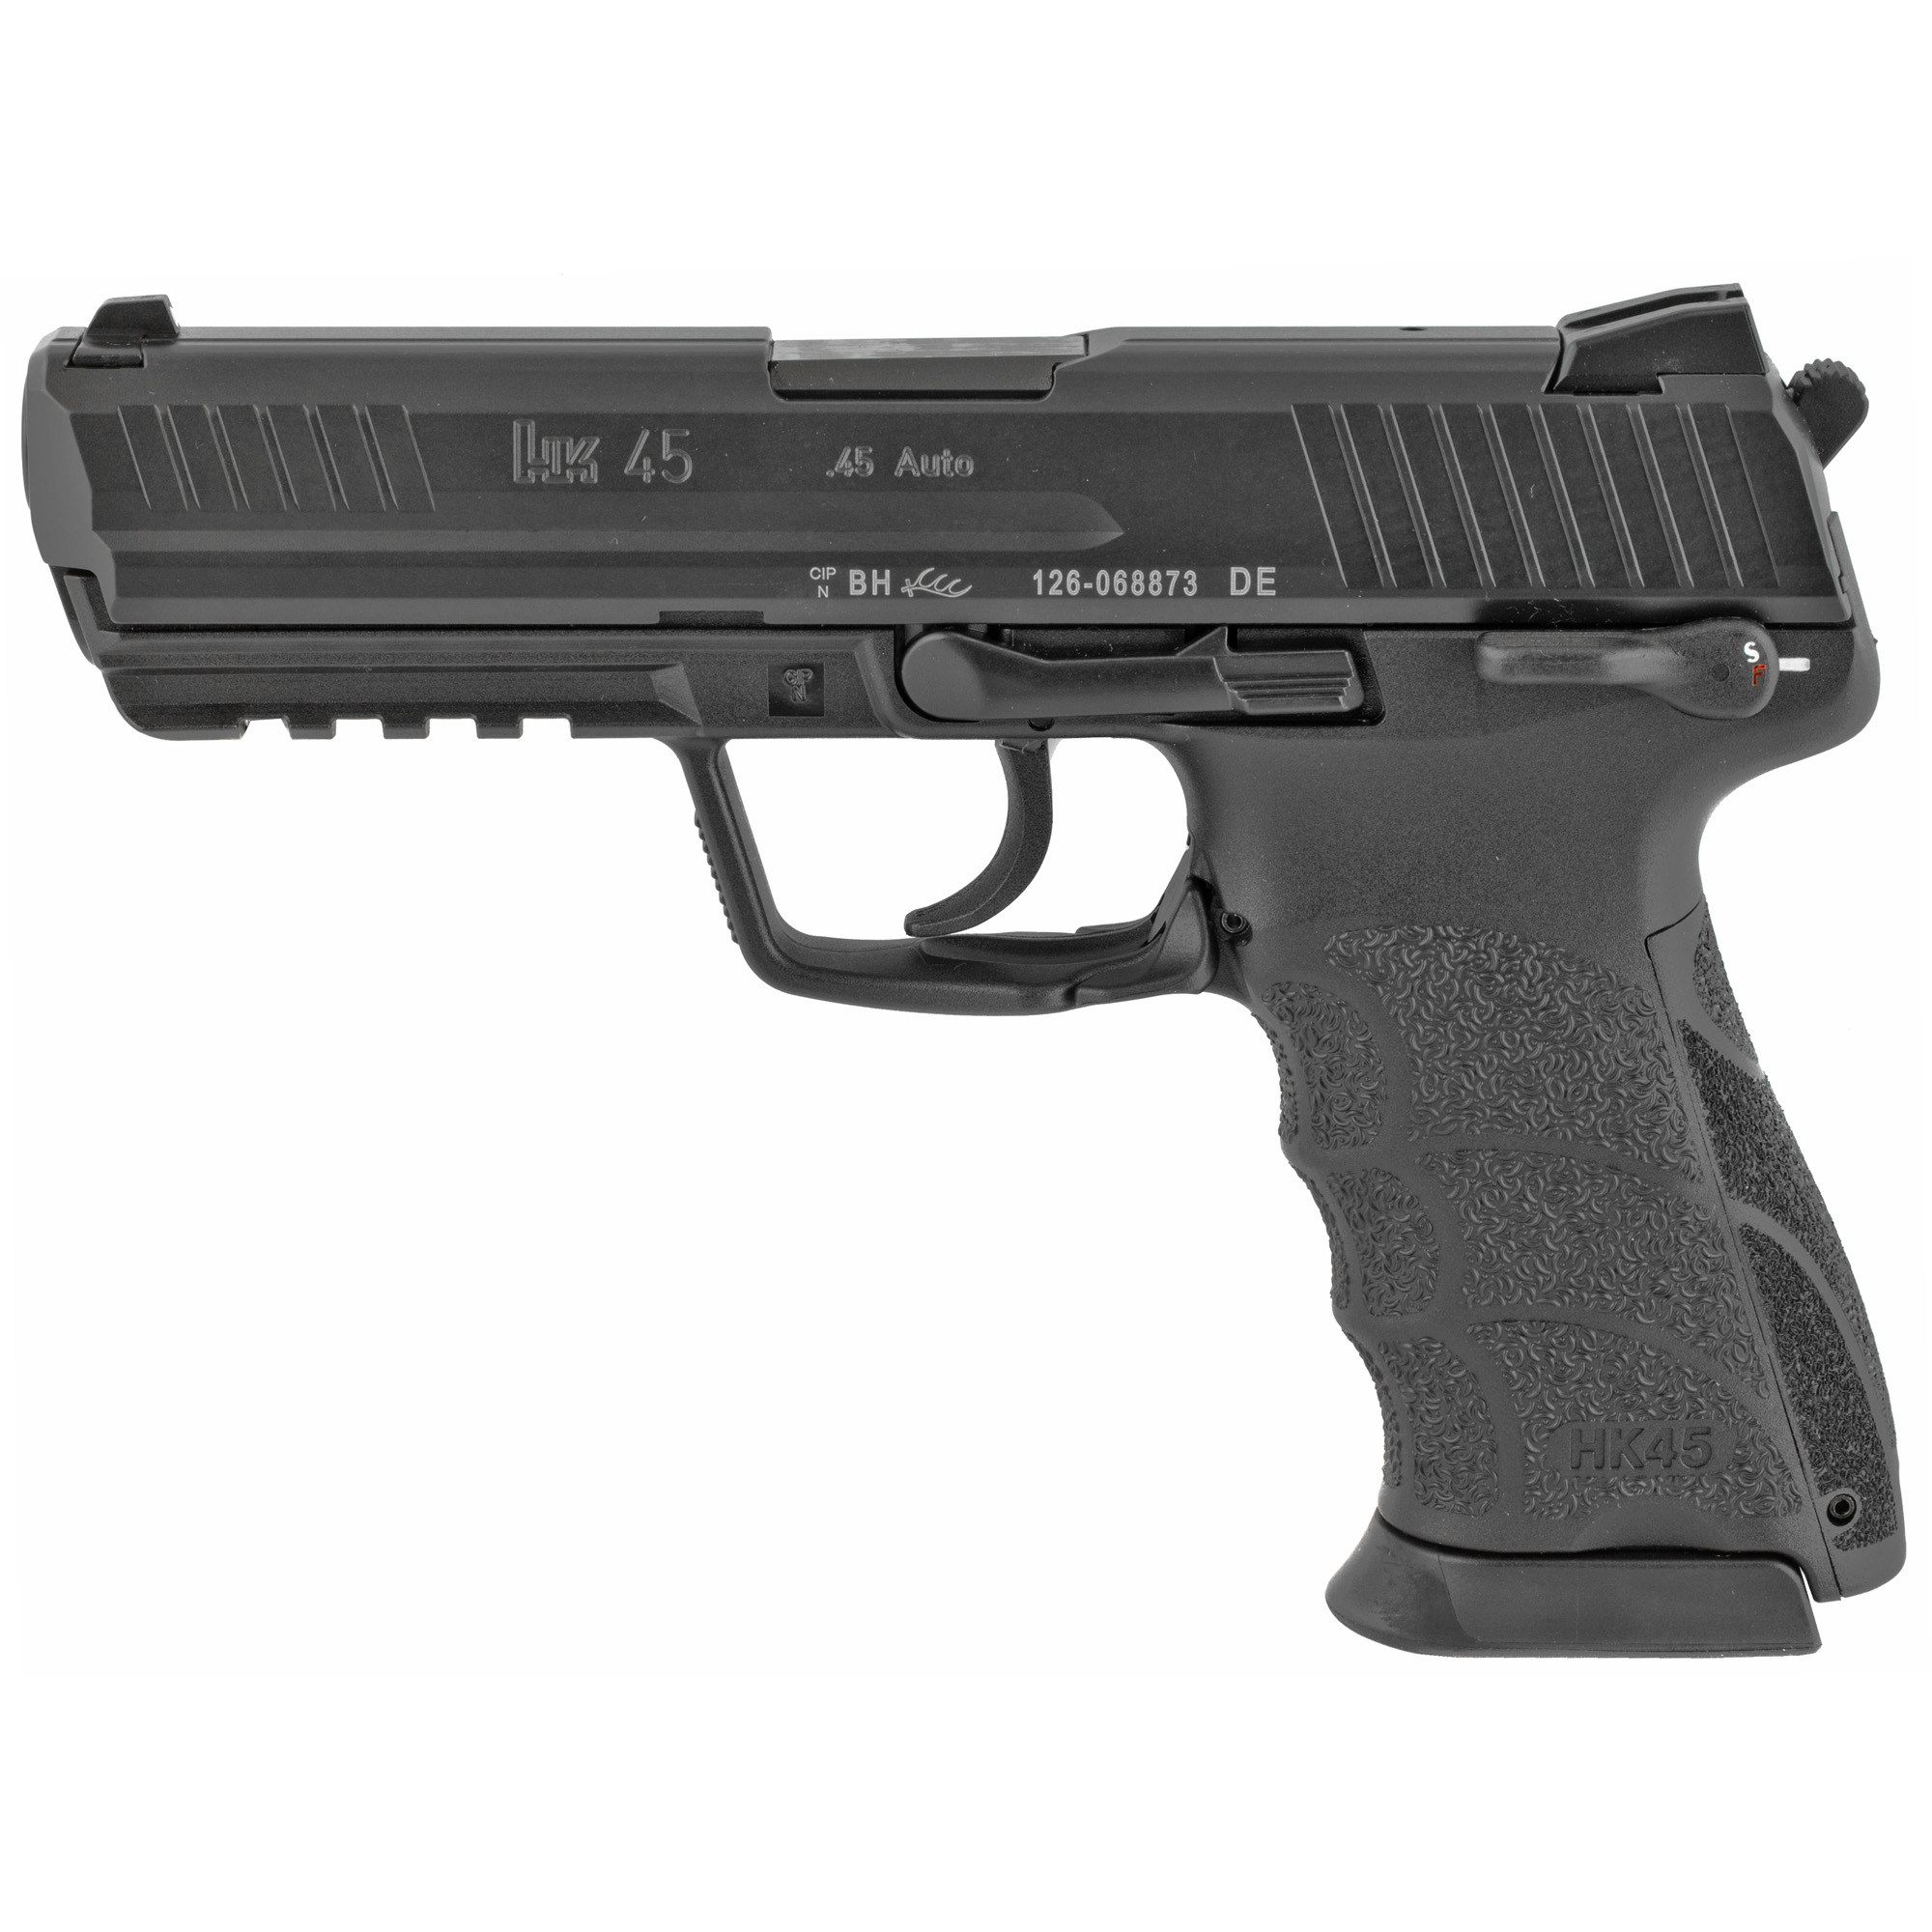 """The HK45 was developed as a product improvement of the highly regarded USP45"""" first released in the 1995. The Caliber .45 ACP HK45 includes several user-inspired enhancements including changeable grip panels (backstraps)"""" a Picatinny MIL-STD-1913 accessory rail"""" better ergonomics"""" and more ambidextrous controls."""